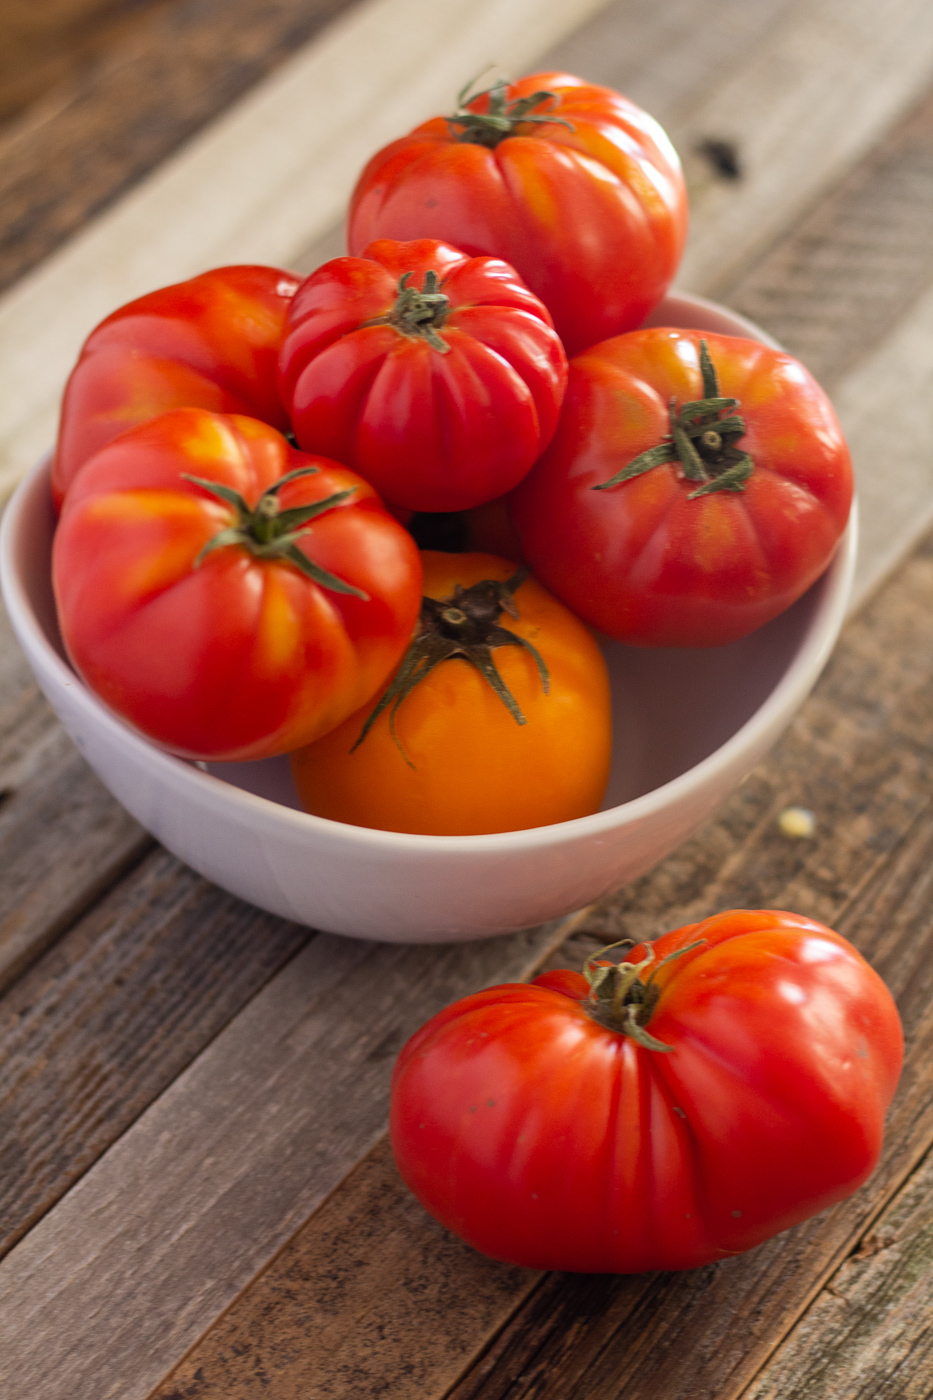 Meet Your Ingredients: Heirloom Tomatoes